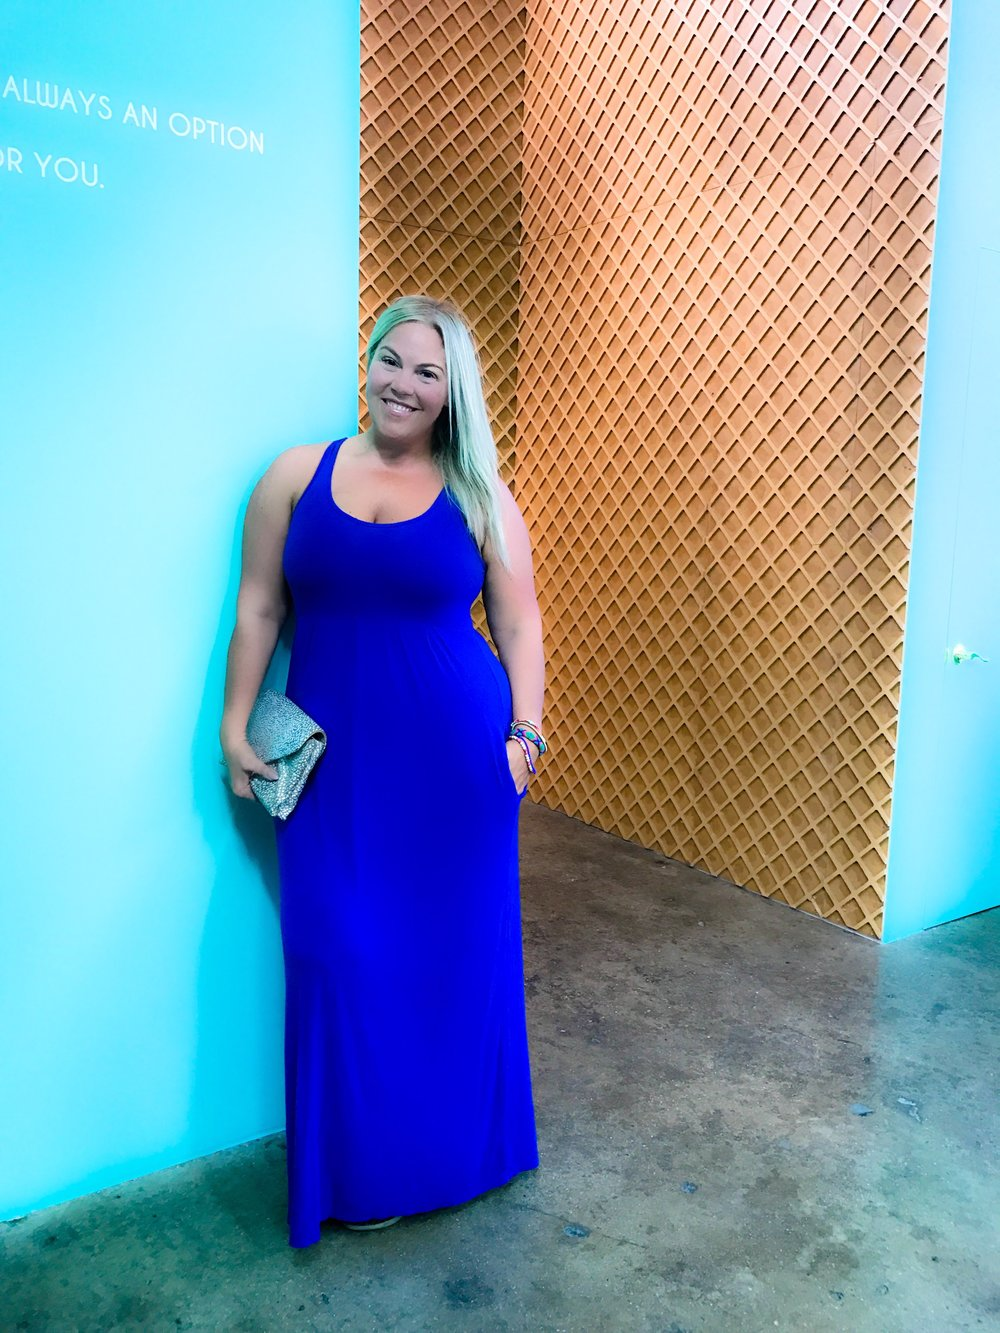 A KETO BLOGGER WALKS INTO THE MUSEUM OF ICE CREAM... by Jen Fisch via Keto In The City